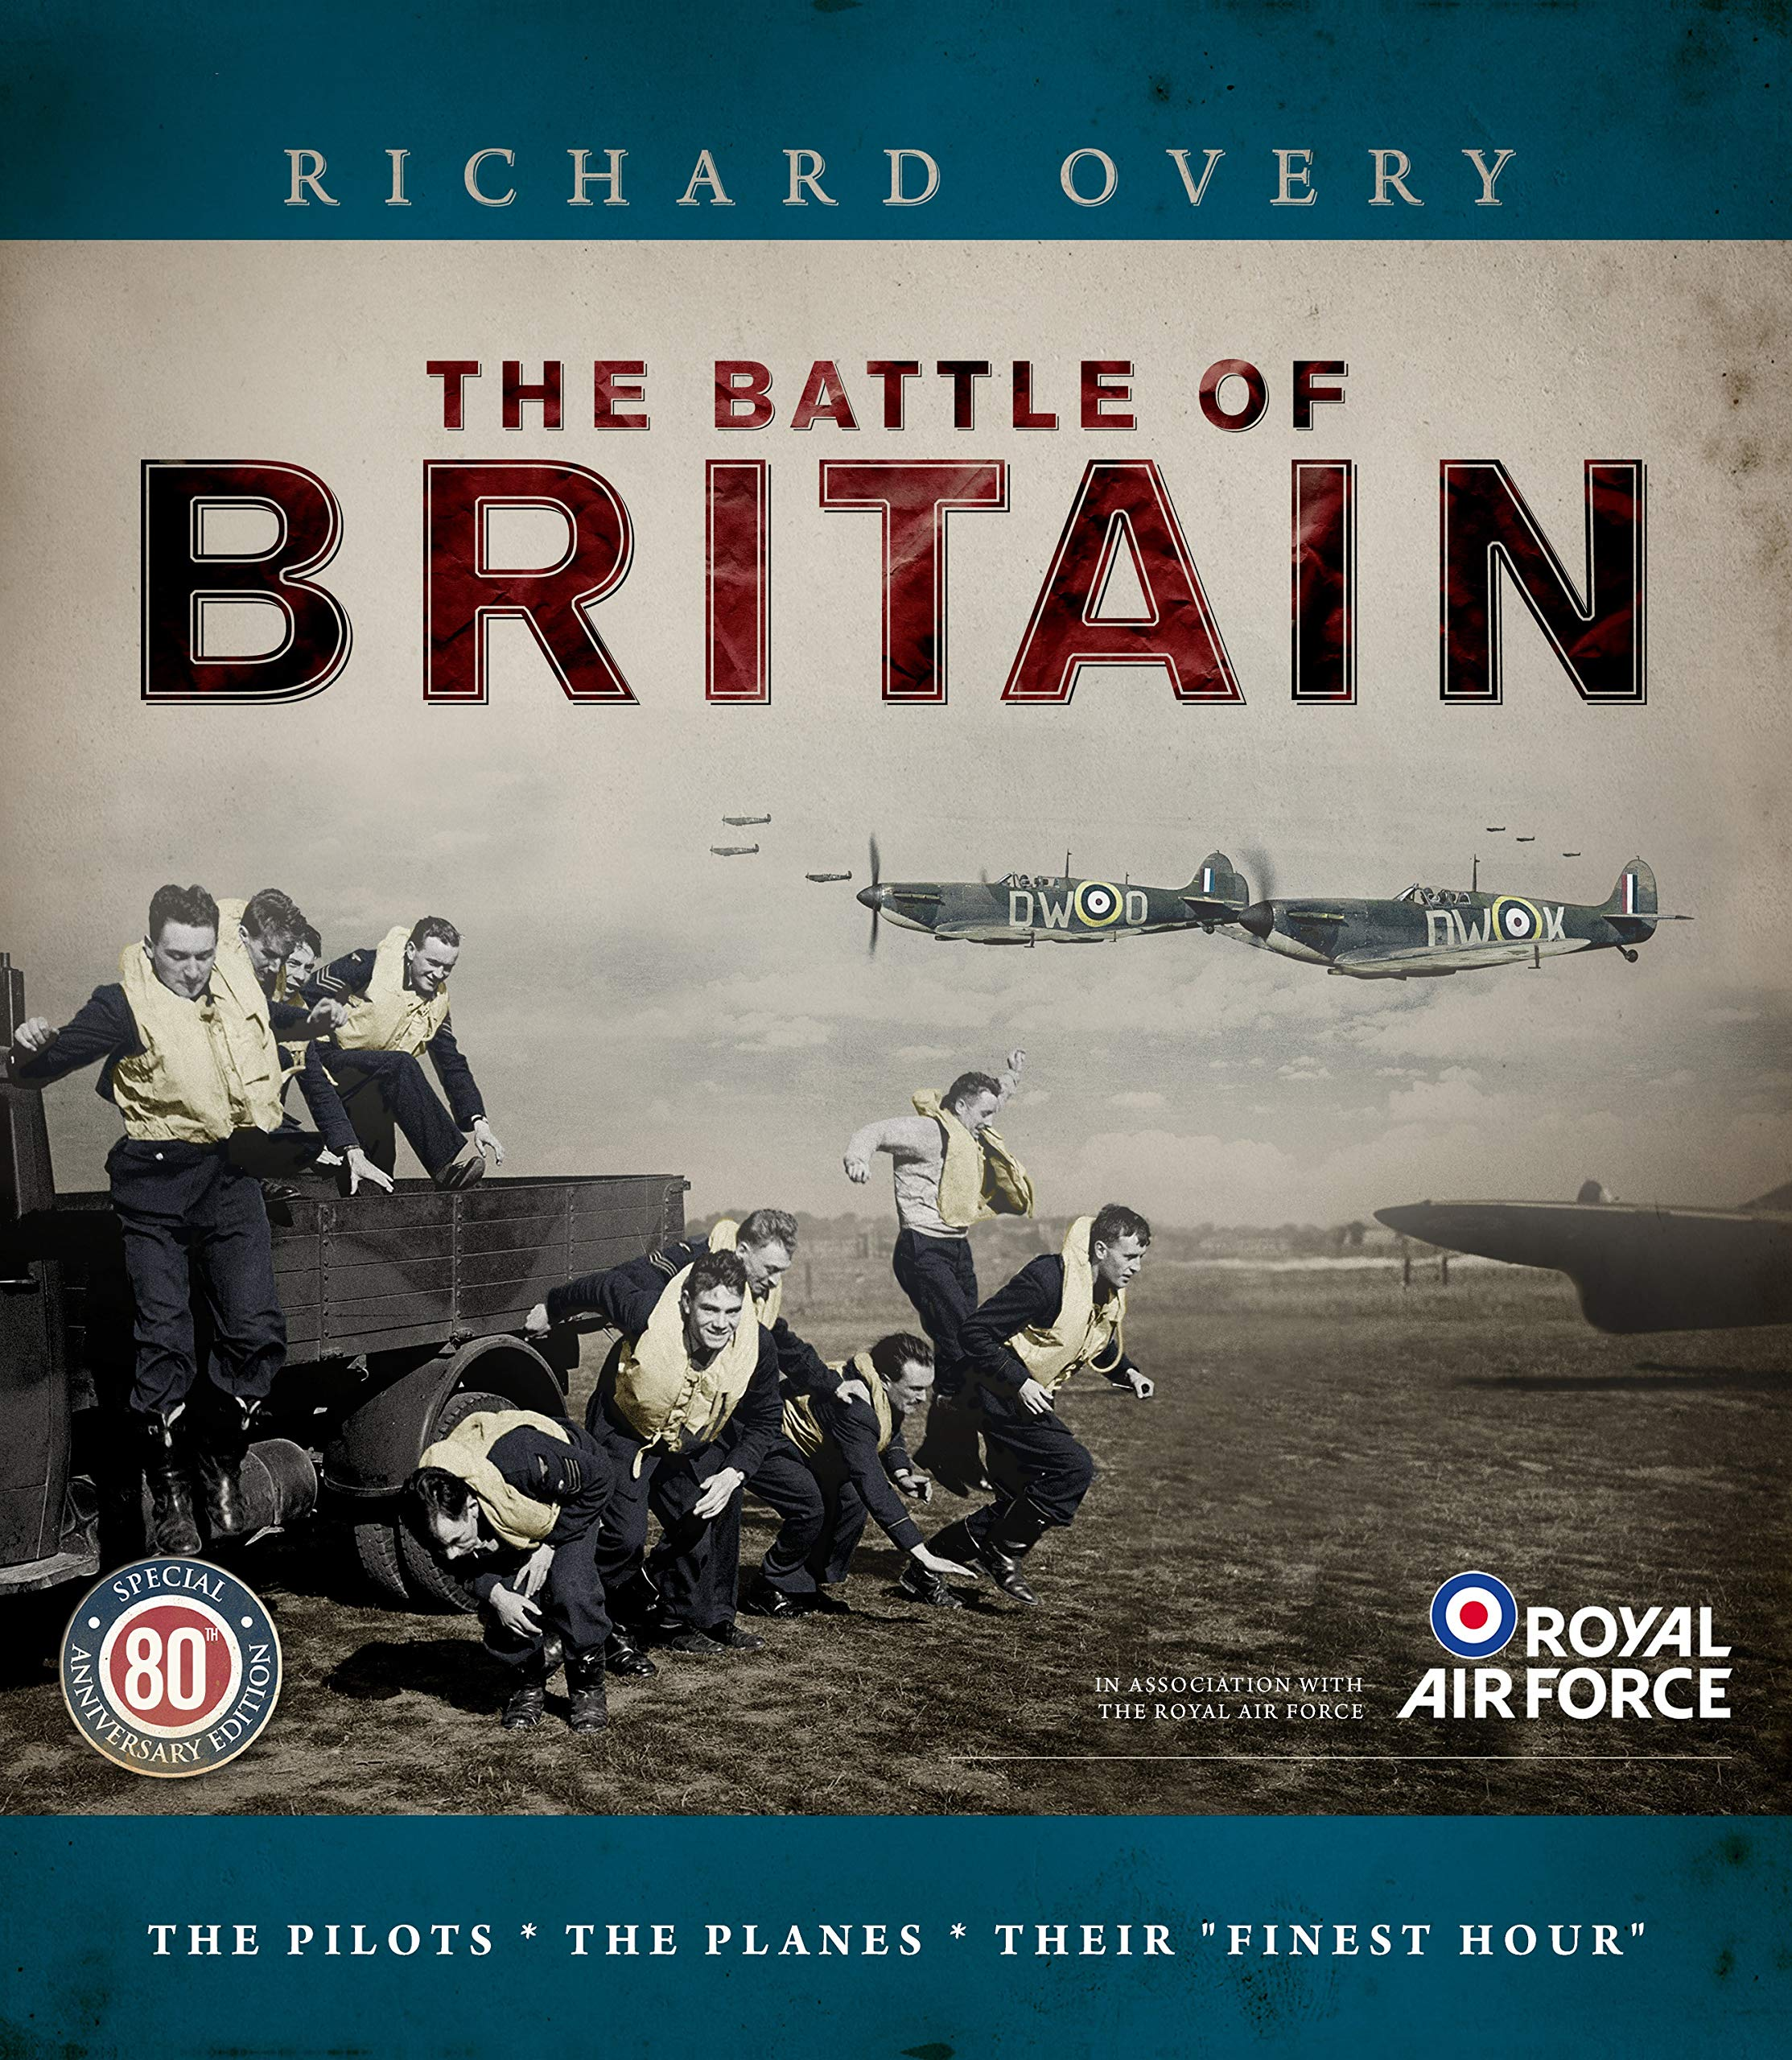 Overy, R: Battle of Britain: Amazon.es: Overy, Richard: Libros en idiomas extranjeros